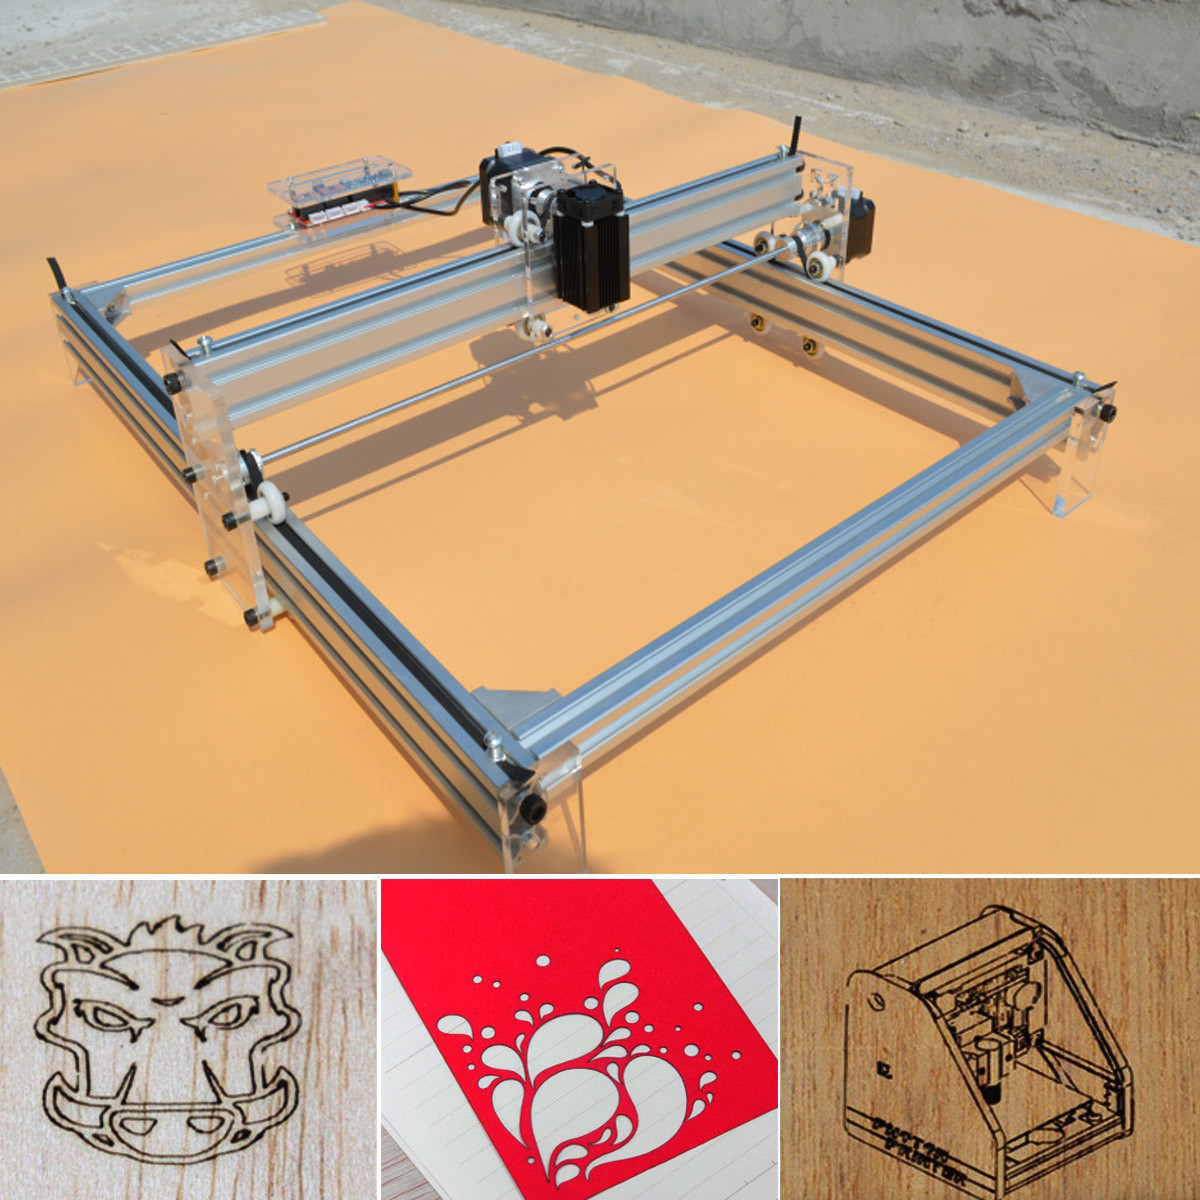 500mW 40X50CM DIY Desktop Mini Blue Laser Engraving Engraver Machine Wood Router/Cutter/Printer/Power Adjustable + Laser Goggles 1000mw diy desktop mini laser engraver engraving machine laser cutter etcher 50x65cm adjustable laser power